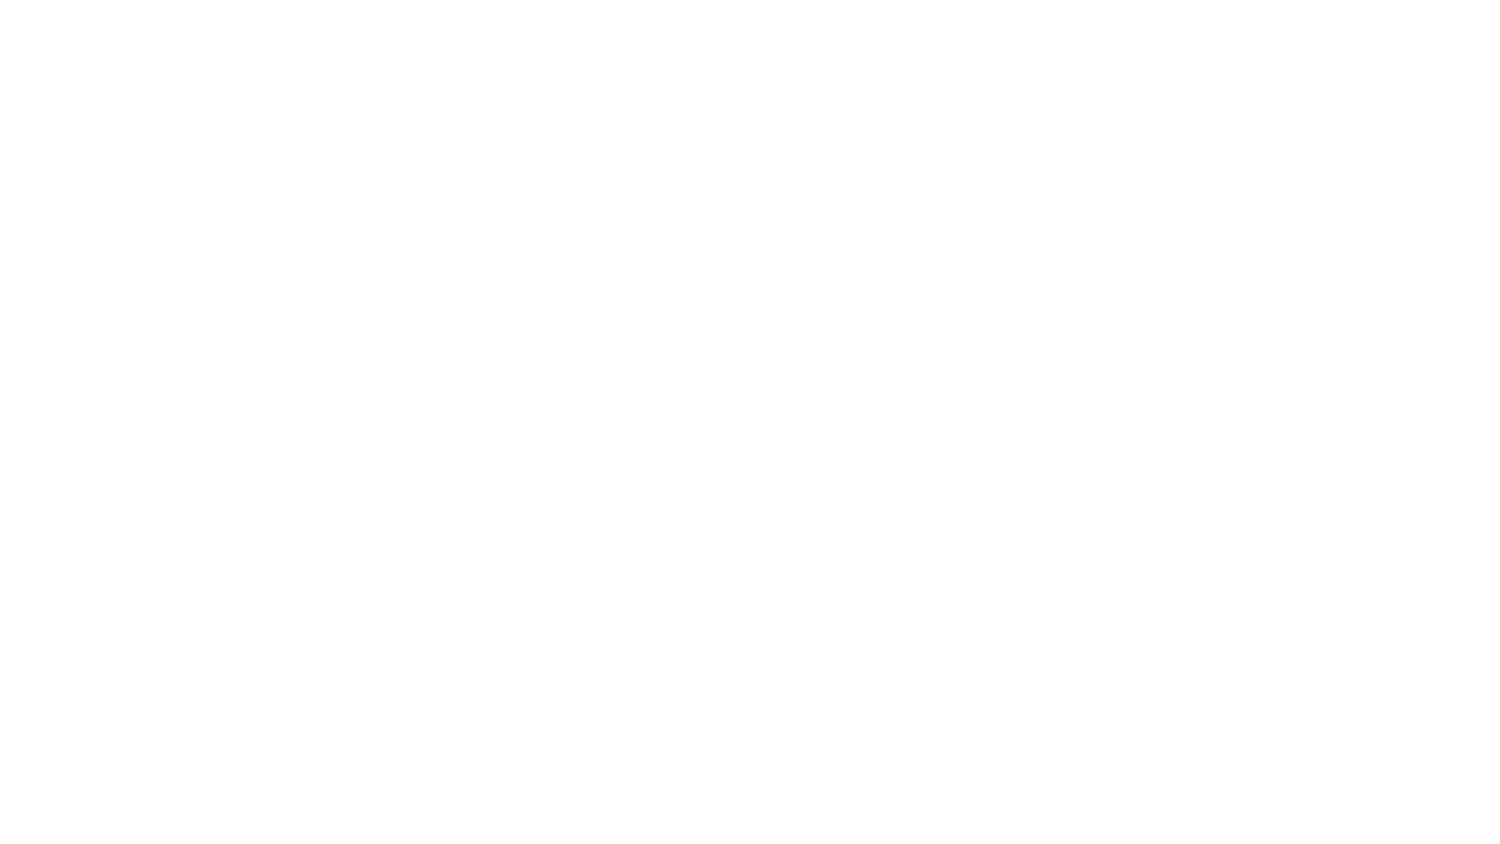 Chris Humphrey for North Carolina House